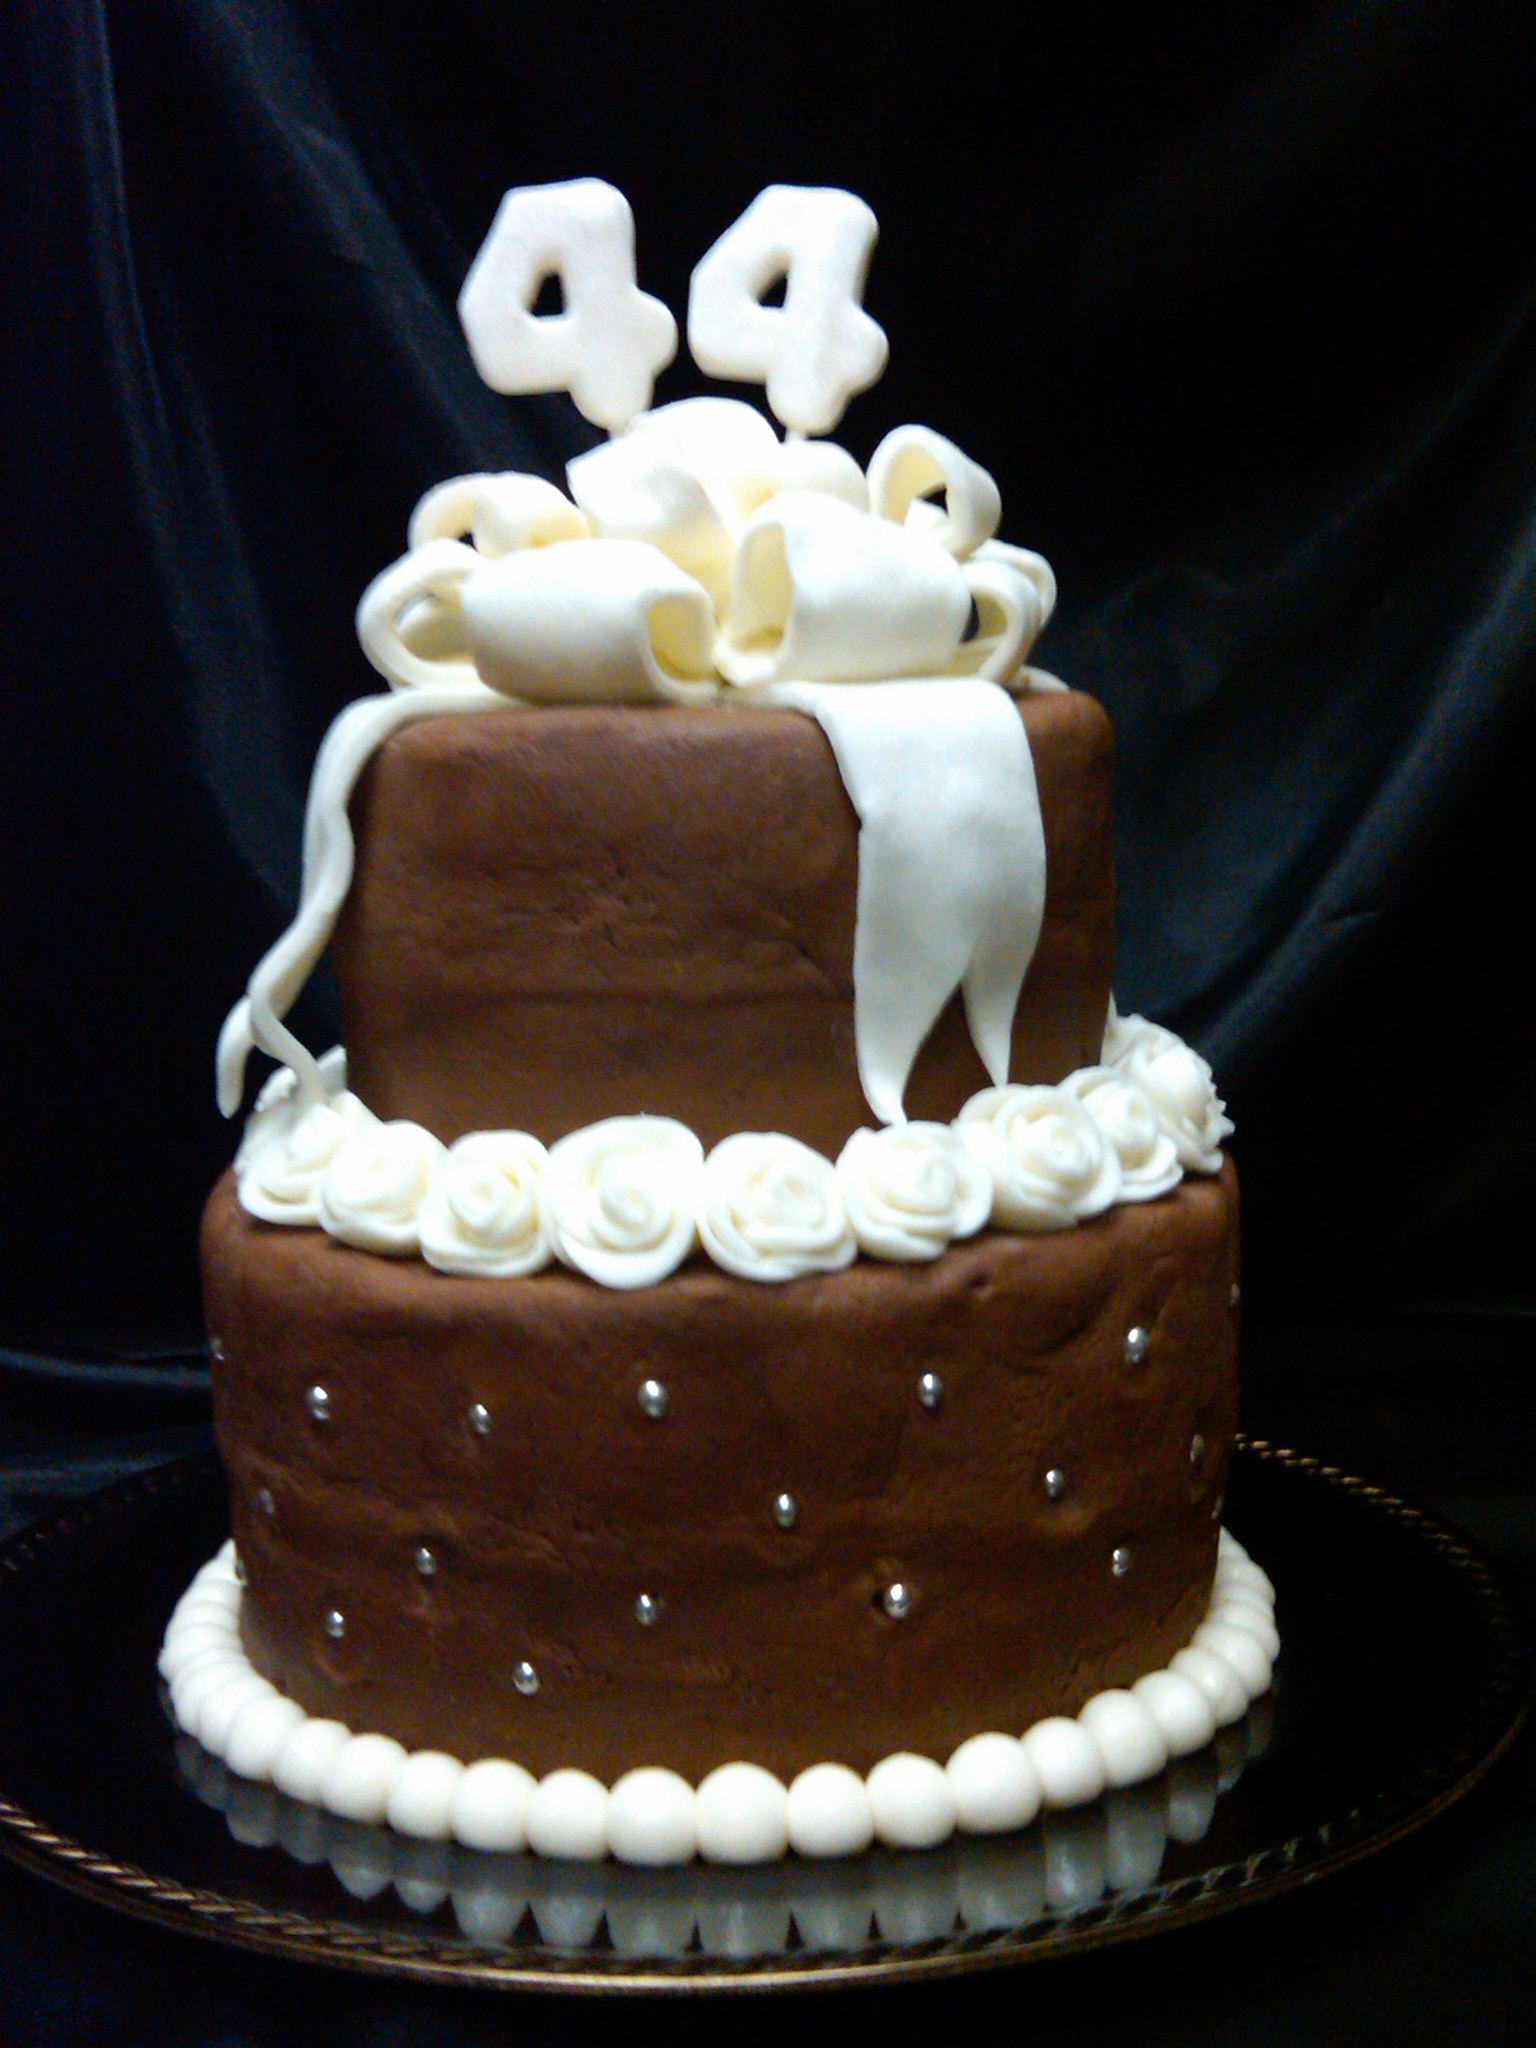 Anniversary Chocolate Cake Design : GLAPION CAKE DESIGNS HOME